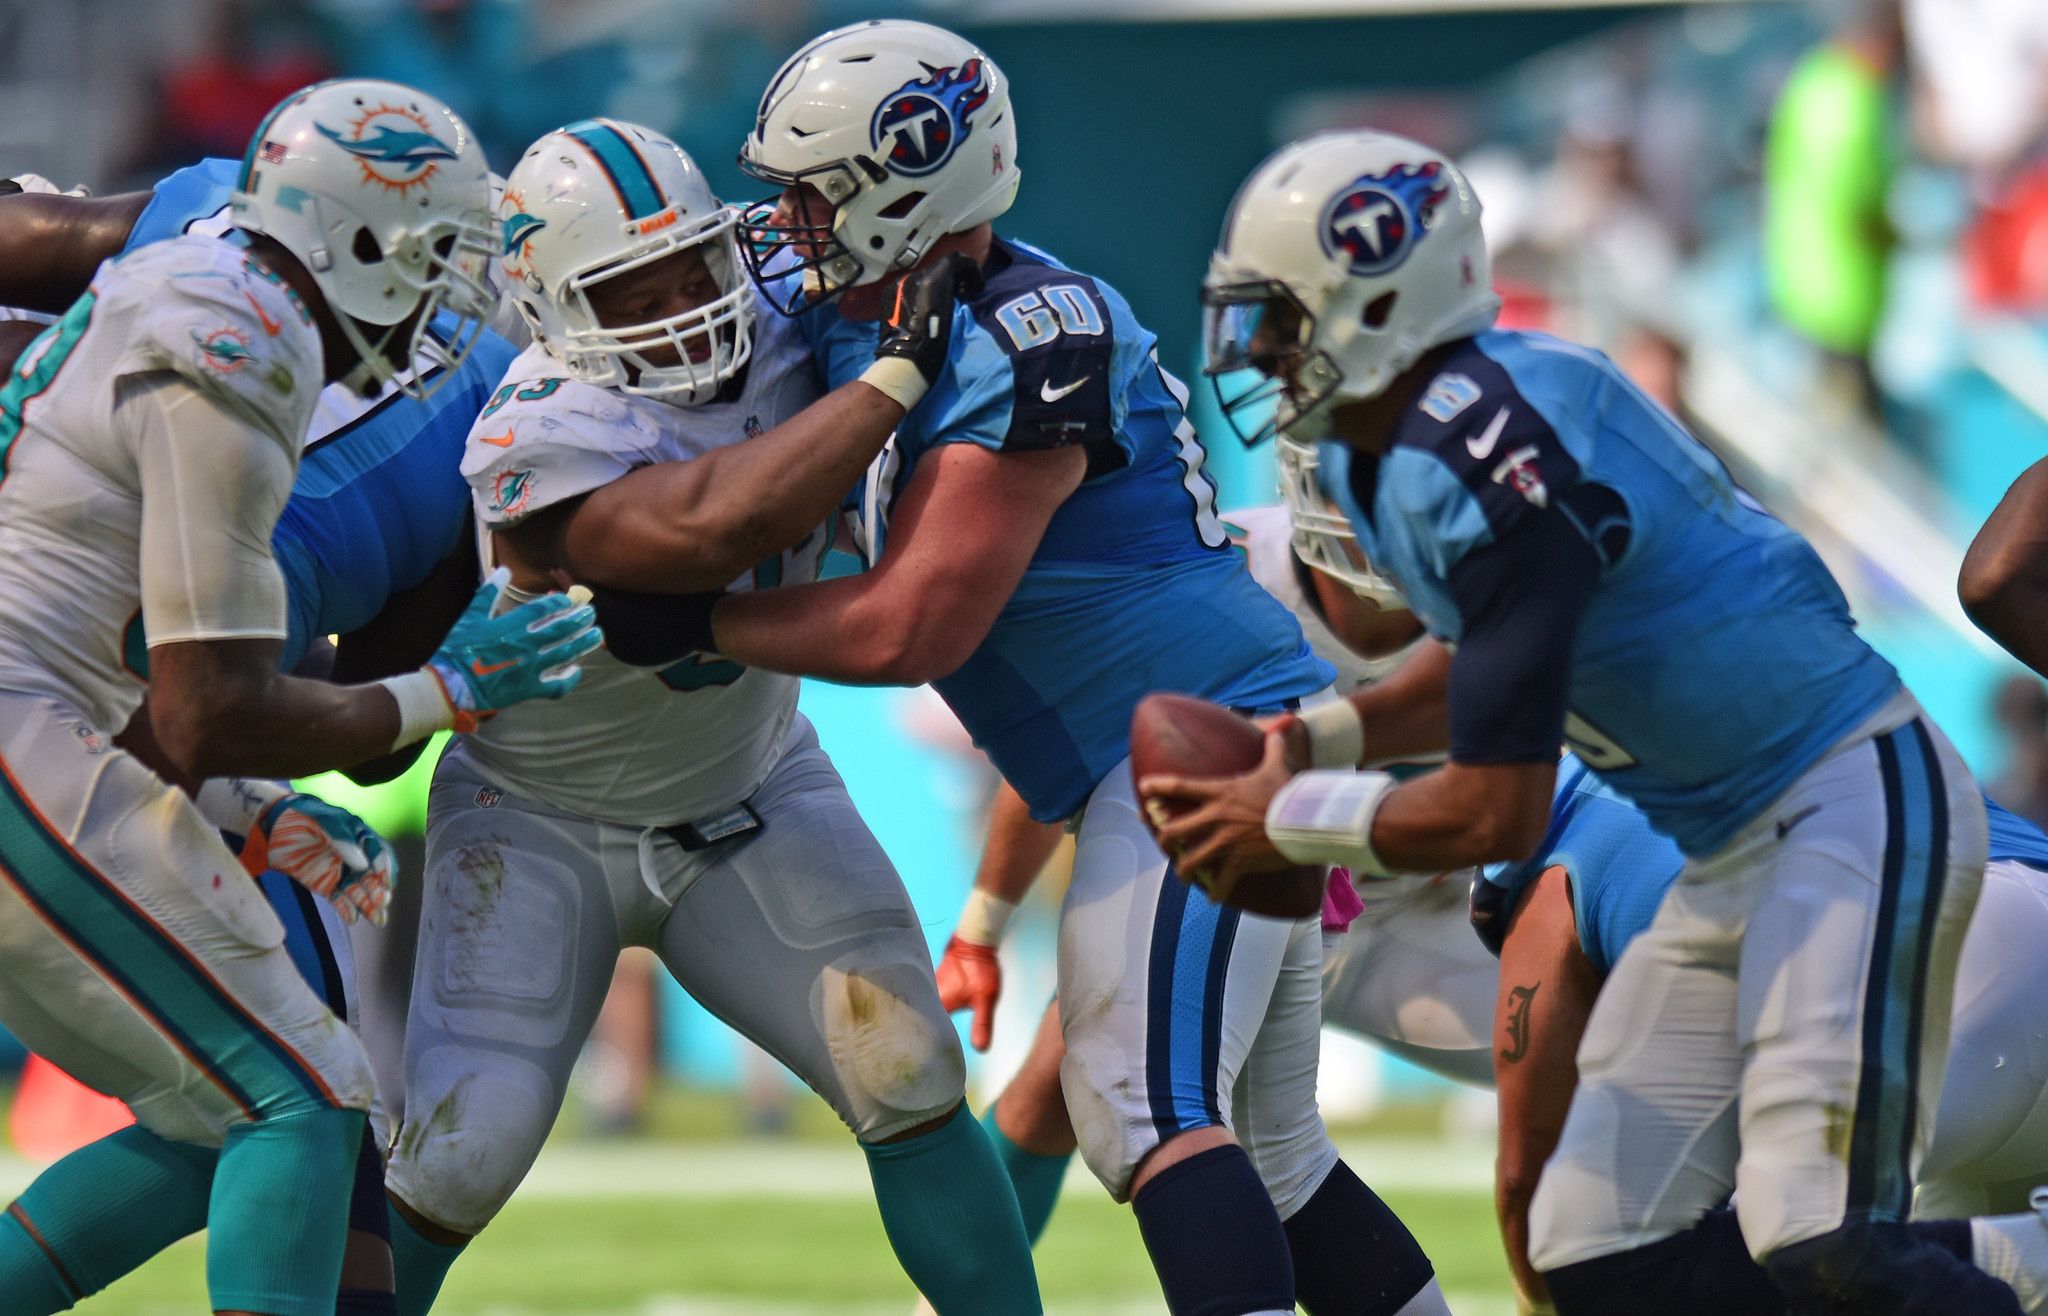 sfl-photos-titans-at-dolphins-20161009